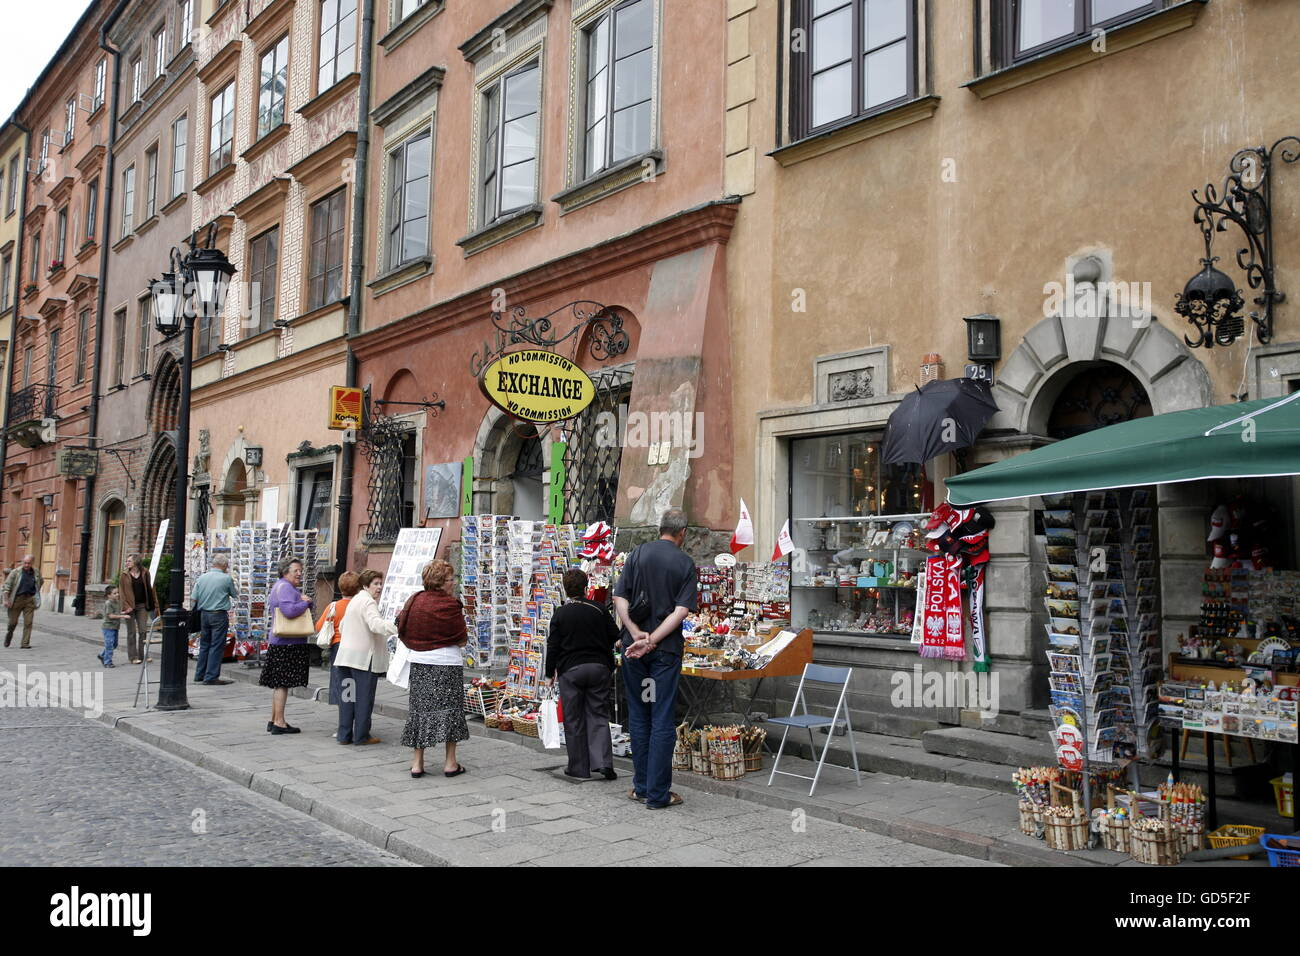 a street market in the old town  in the City of Warsaw in Poland, East Europe. - Stock Image